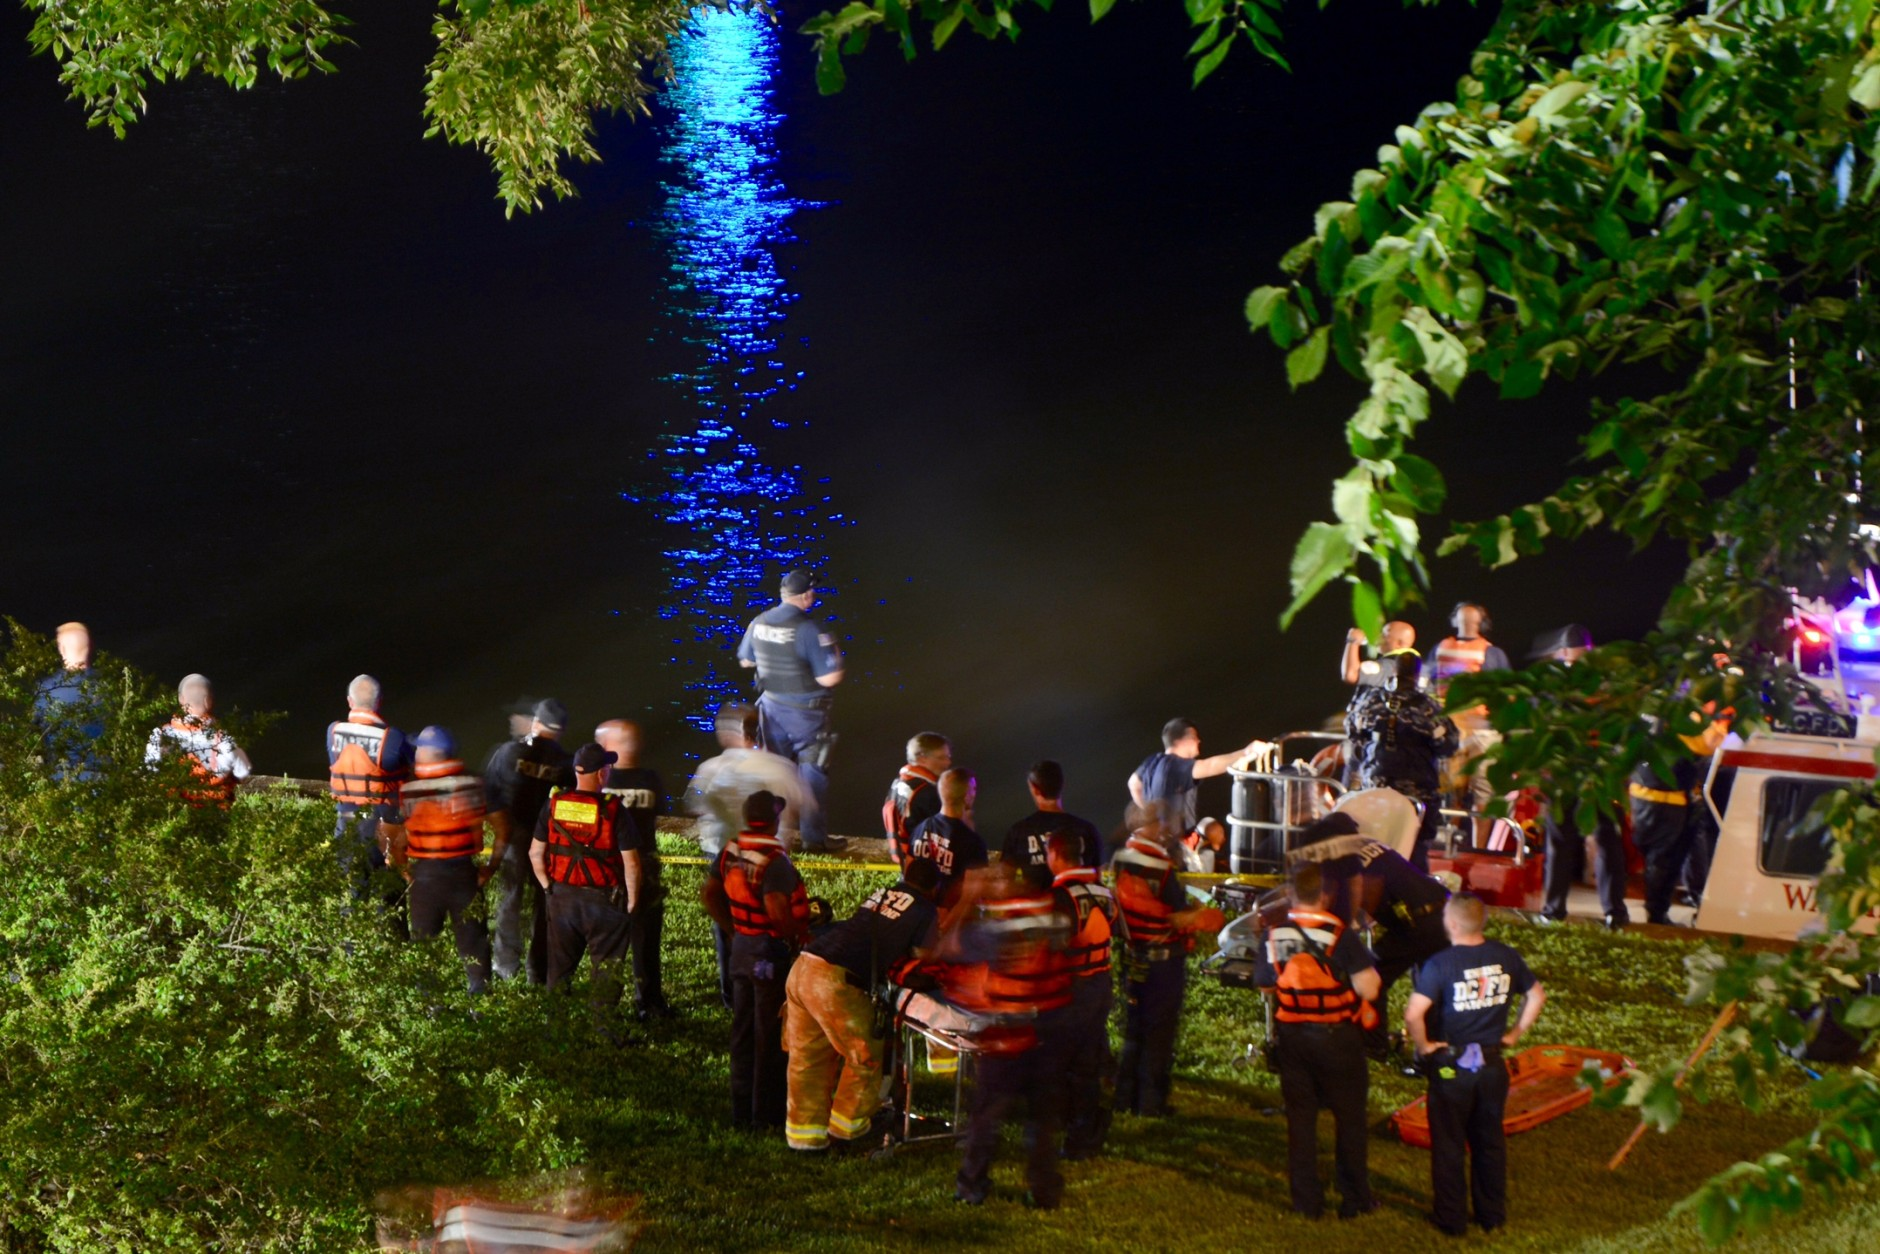 D.C. Fire and EMS search for a car that crashed into the Potomac River Saturday night near the Roosevelt Bridge with two occupants still trapped inside. (WTOP/Dave Dildine)